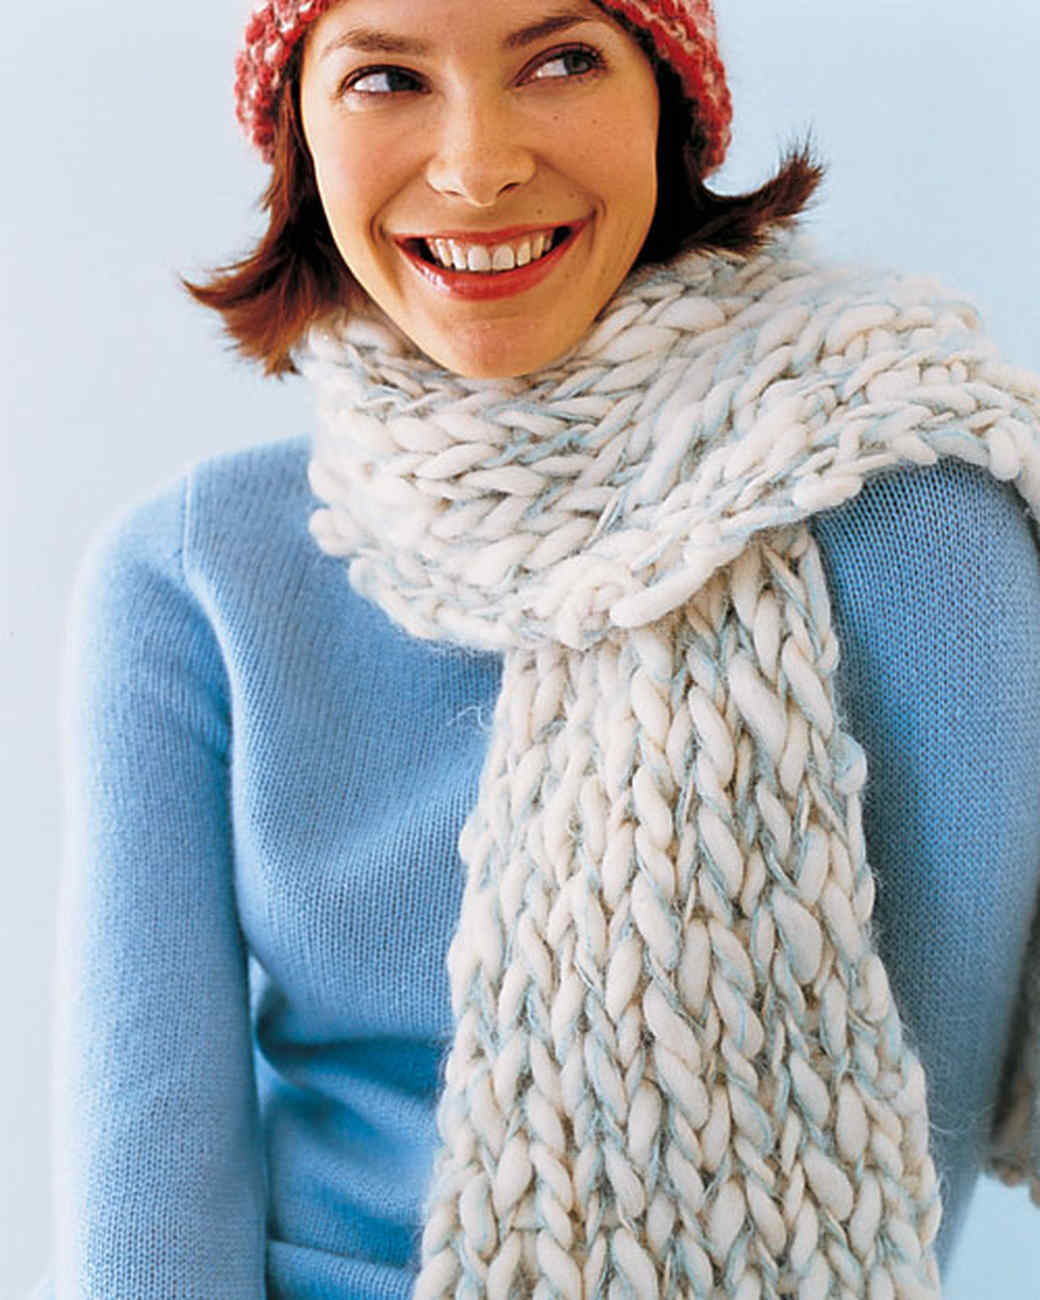 ft_feb03knit01.jpg